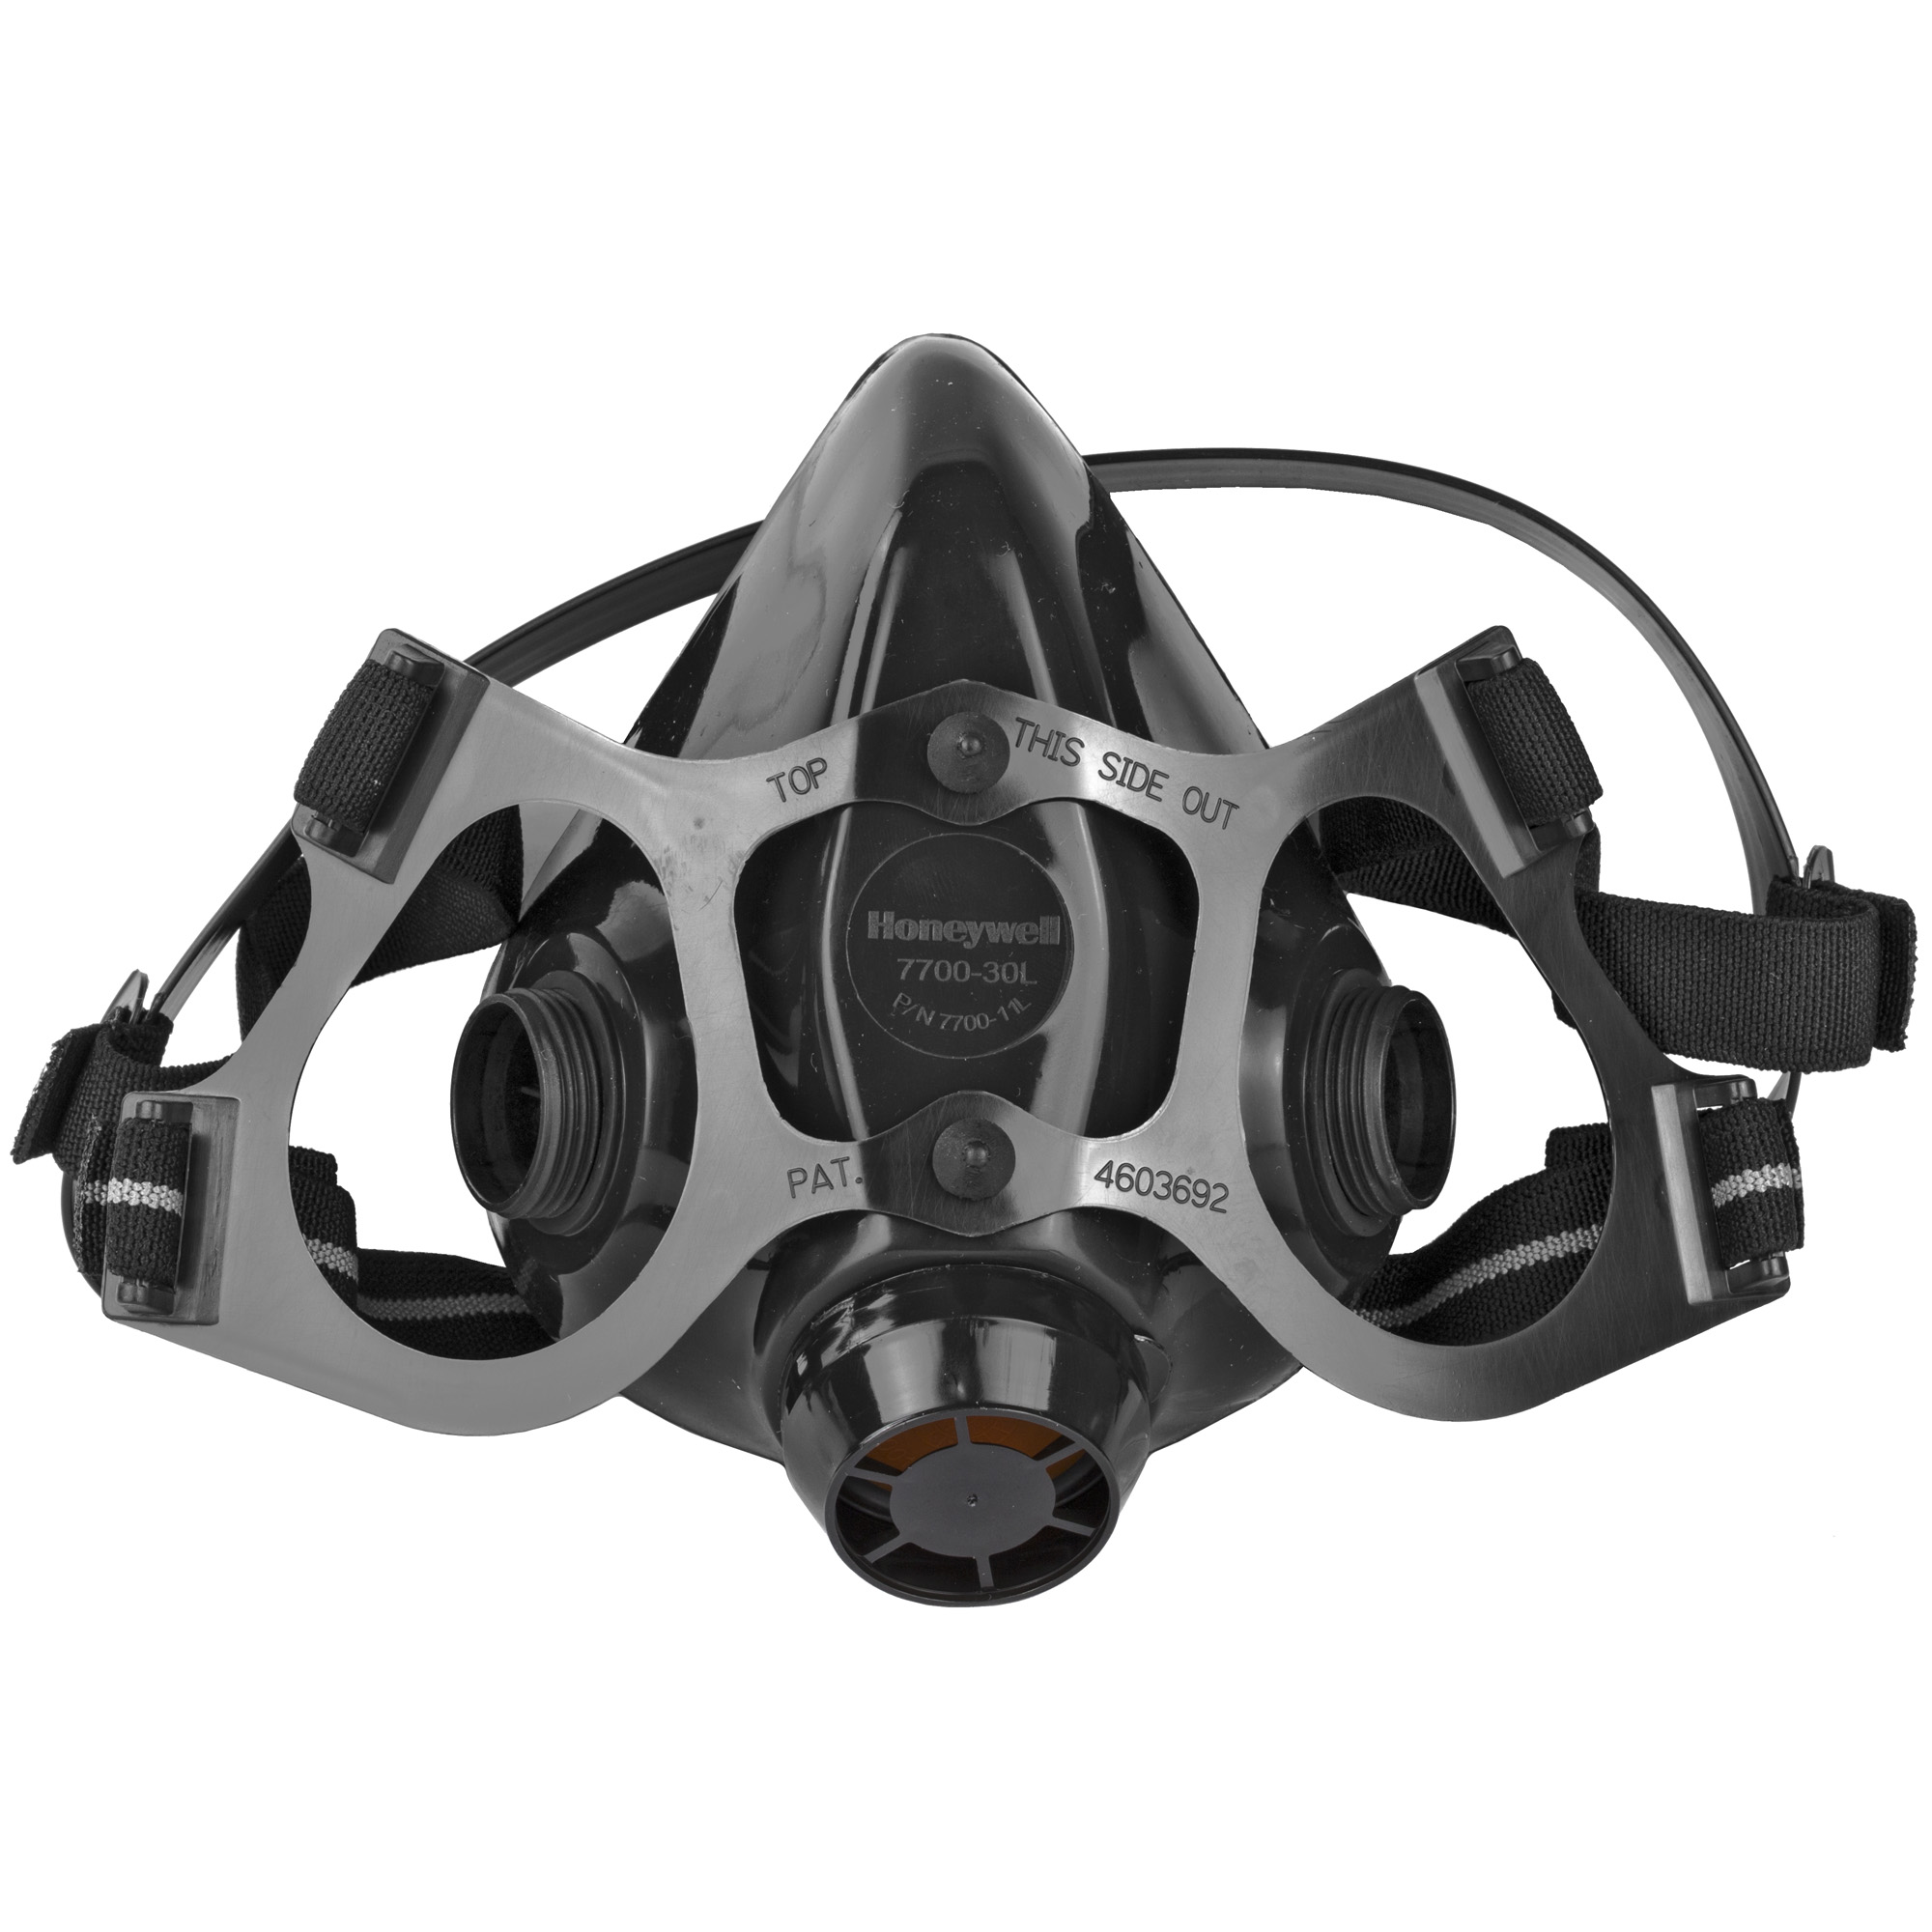 """The 7700 Series is the benchmark in half masks. Made from 100% medical grade silicone"""" the wide sealing area provides exceptional fit and comfort. Cradle suspension features woven straps that provide for maximum mobility without sacrificing support. Easily converts to PAPR or supplied air."""